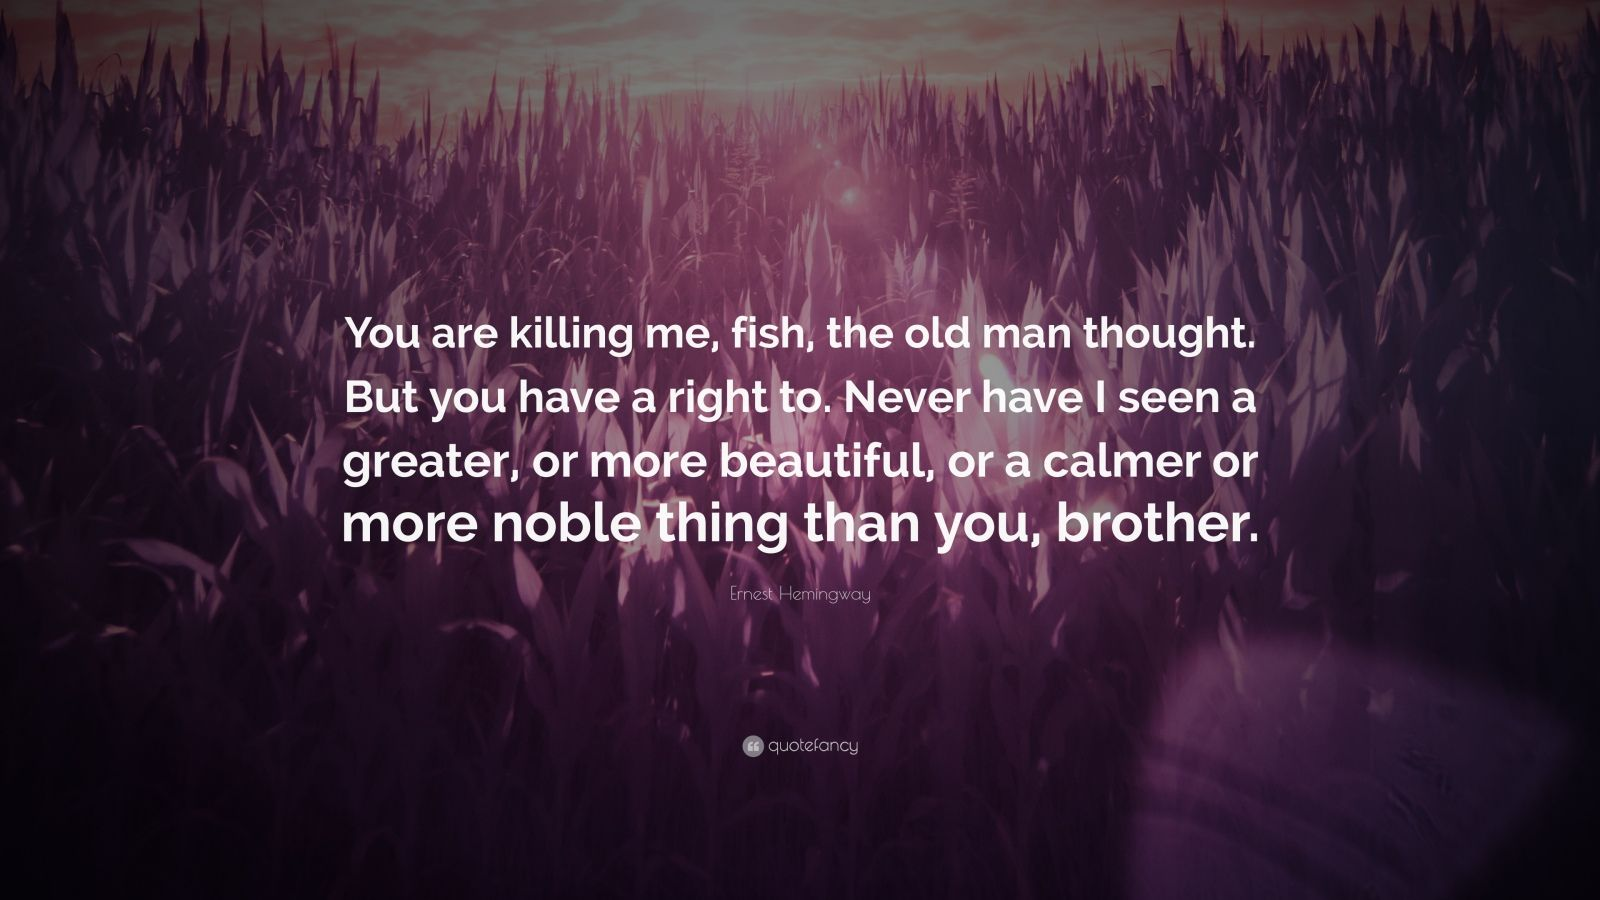 """Ernest Hemingway Quote: """"You are killing me, fish, the old man thought. But you have a right to. Never have I seen a greater, or more beautiful, or a calmer or more noble thing than you, brother."""""""